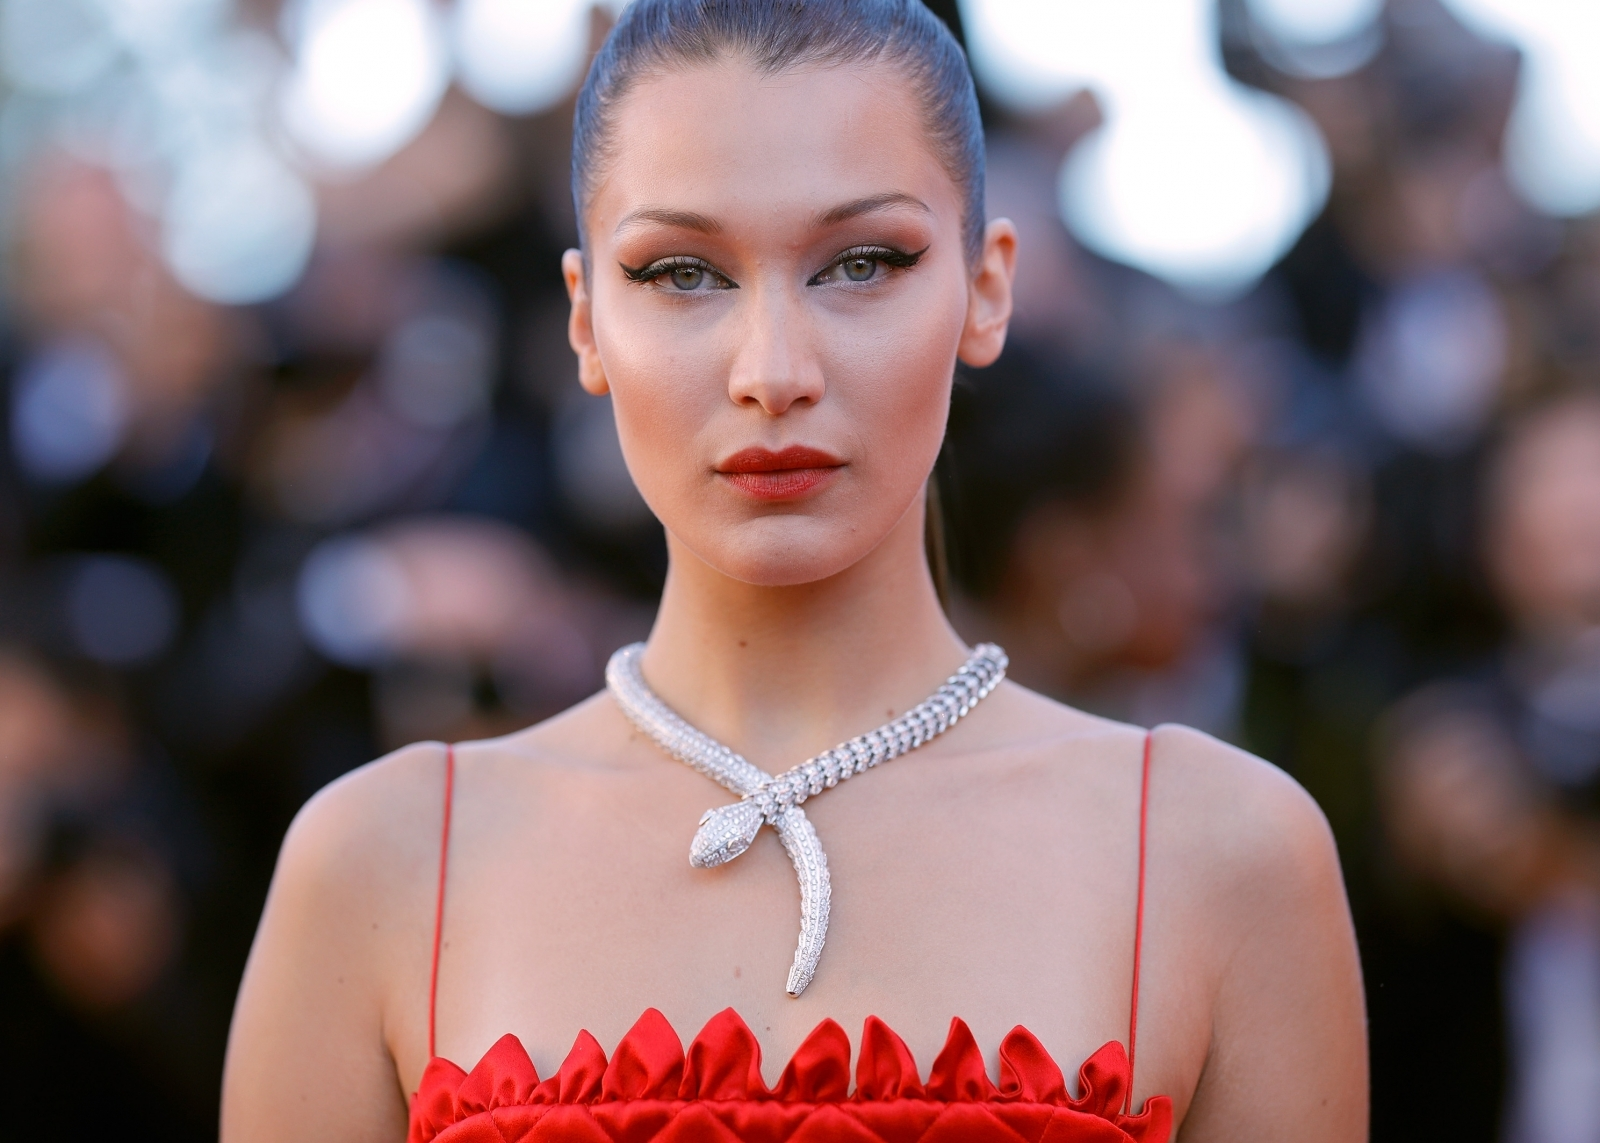 Bella Hadid praised after going make-up free on Instagram: 'Natural beauty'